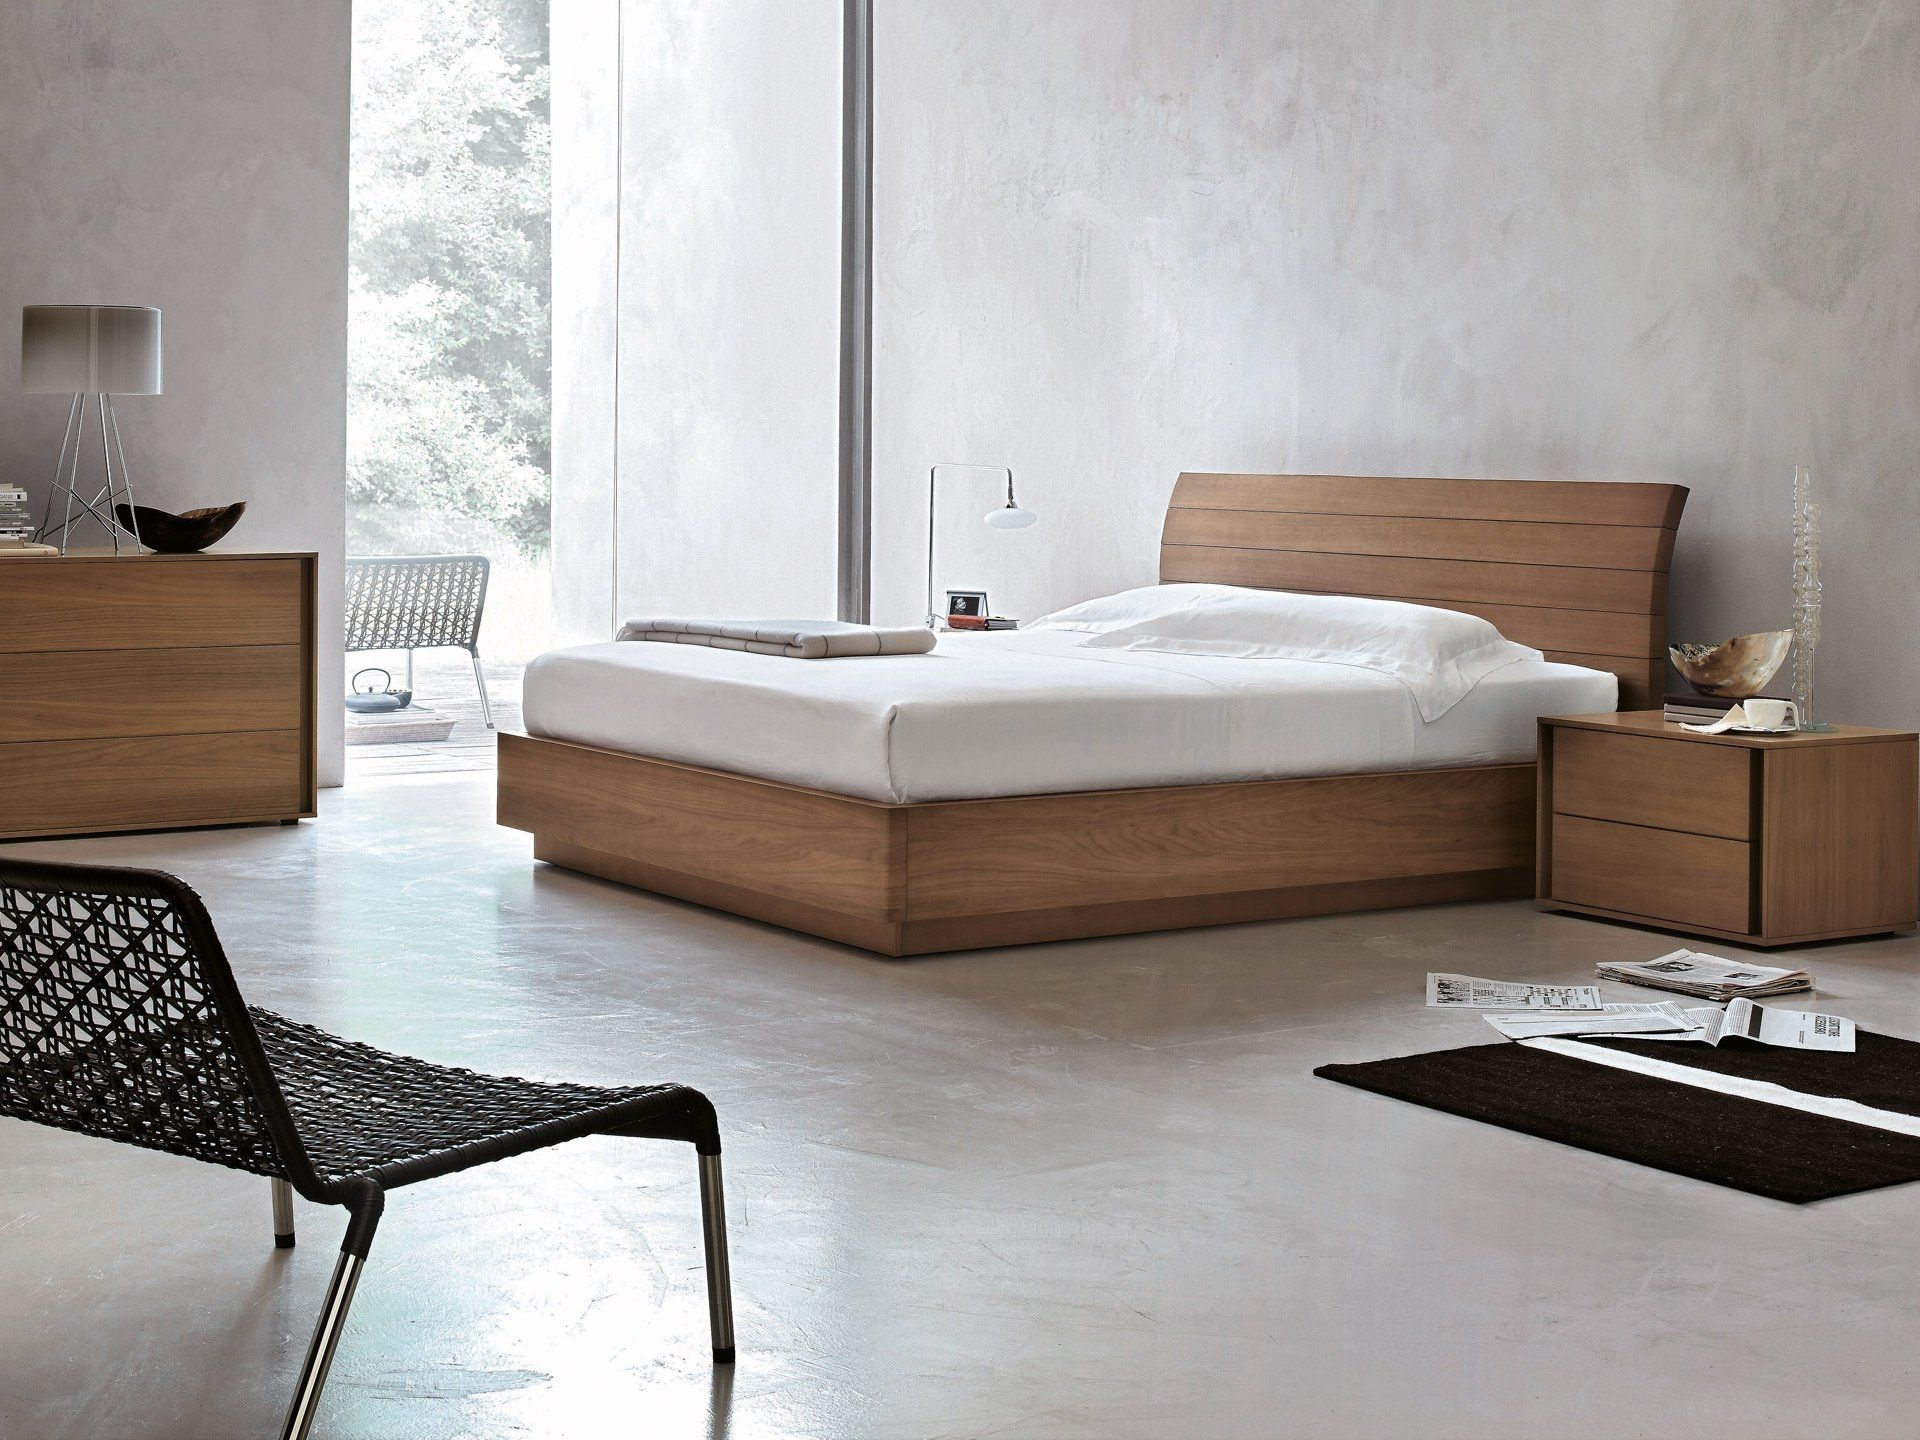 Awesome Double Bed Designs In Wood 10 Modern Diy Art Designs